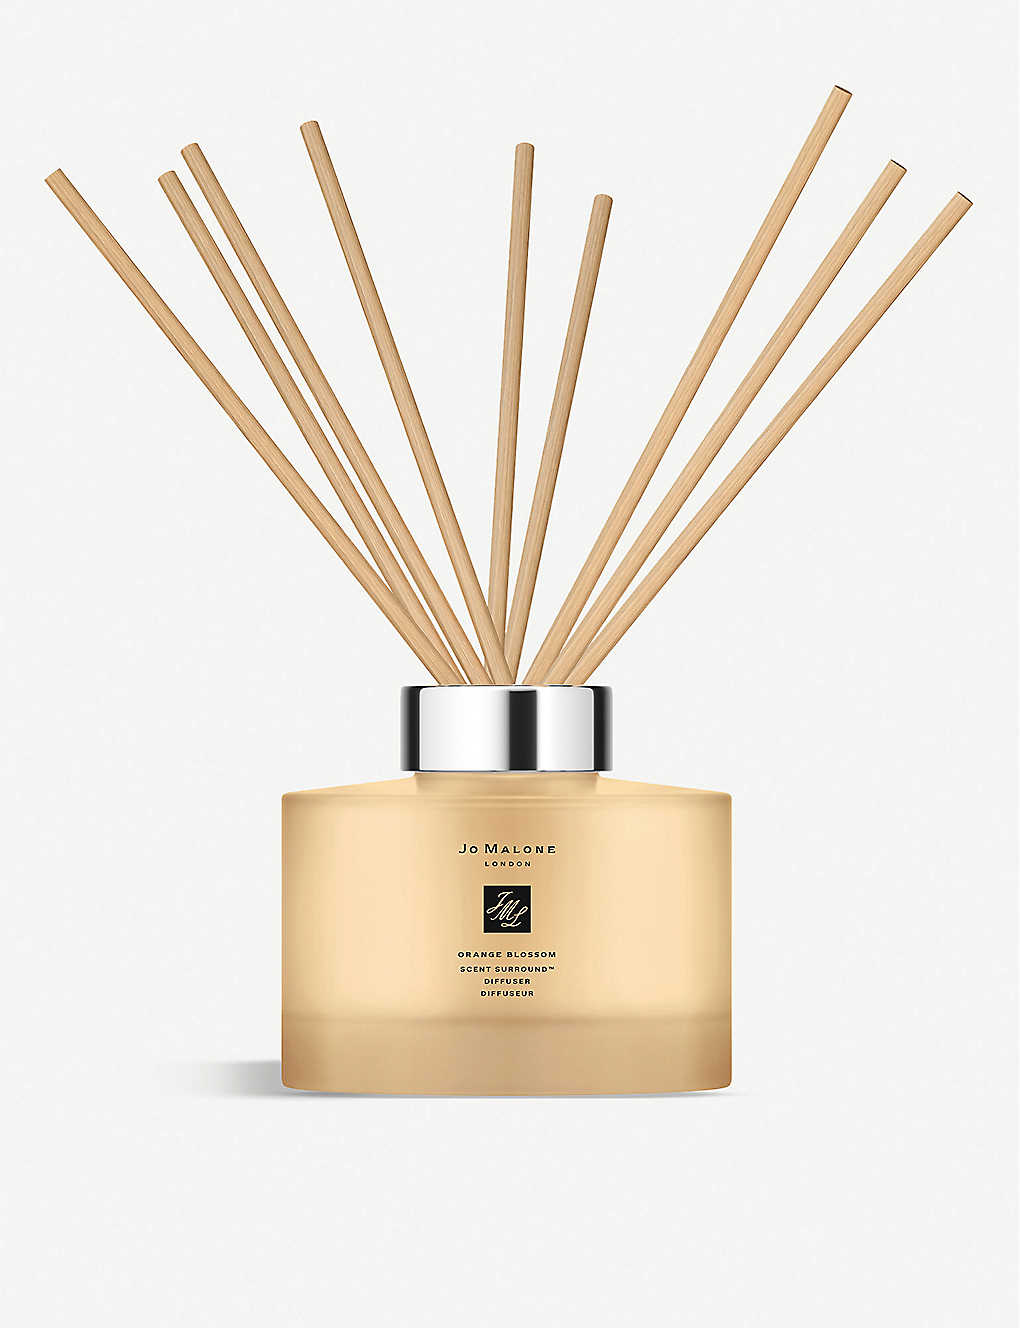 JO MALONE LONDON: Orange Blossom scented diffuser 165ml